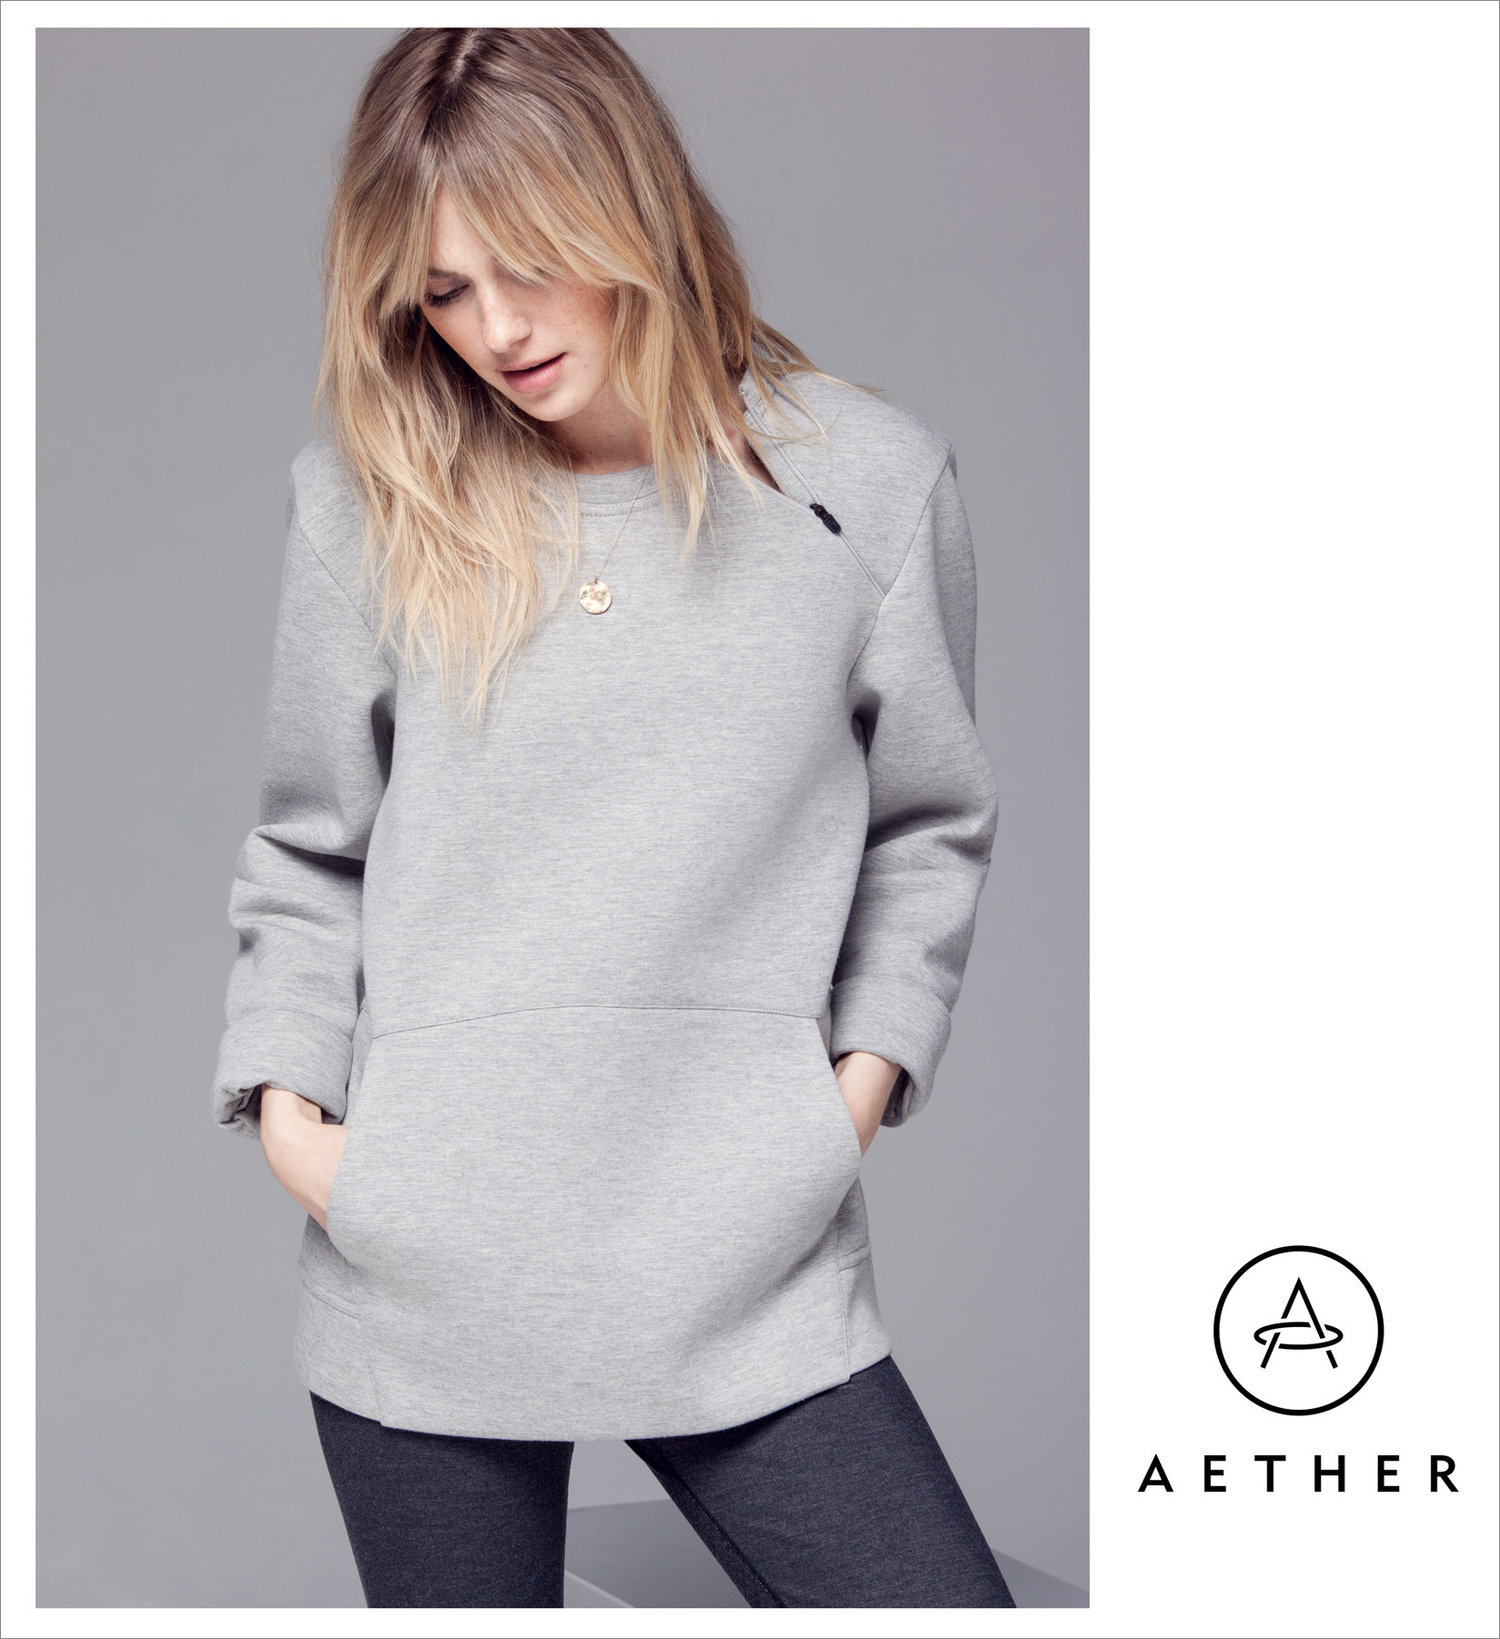 AETHER_S16_D2_RR_3875+copy.jpg